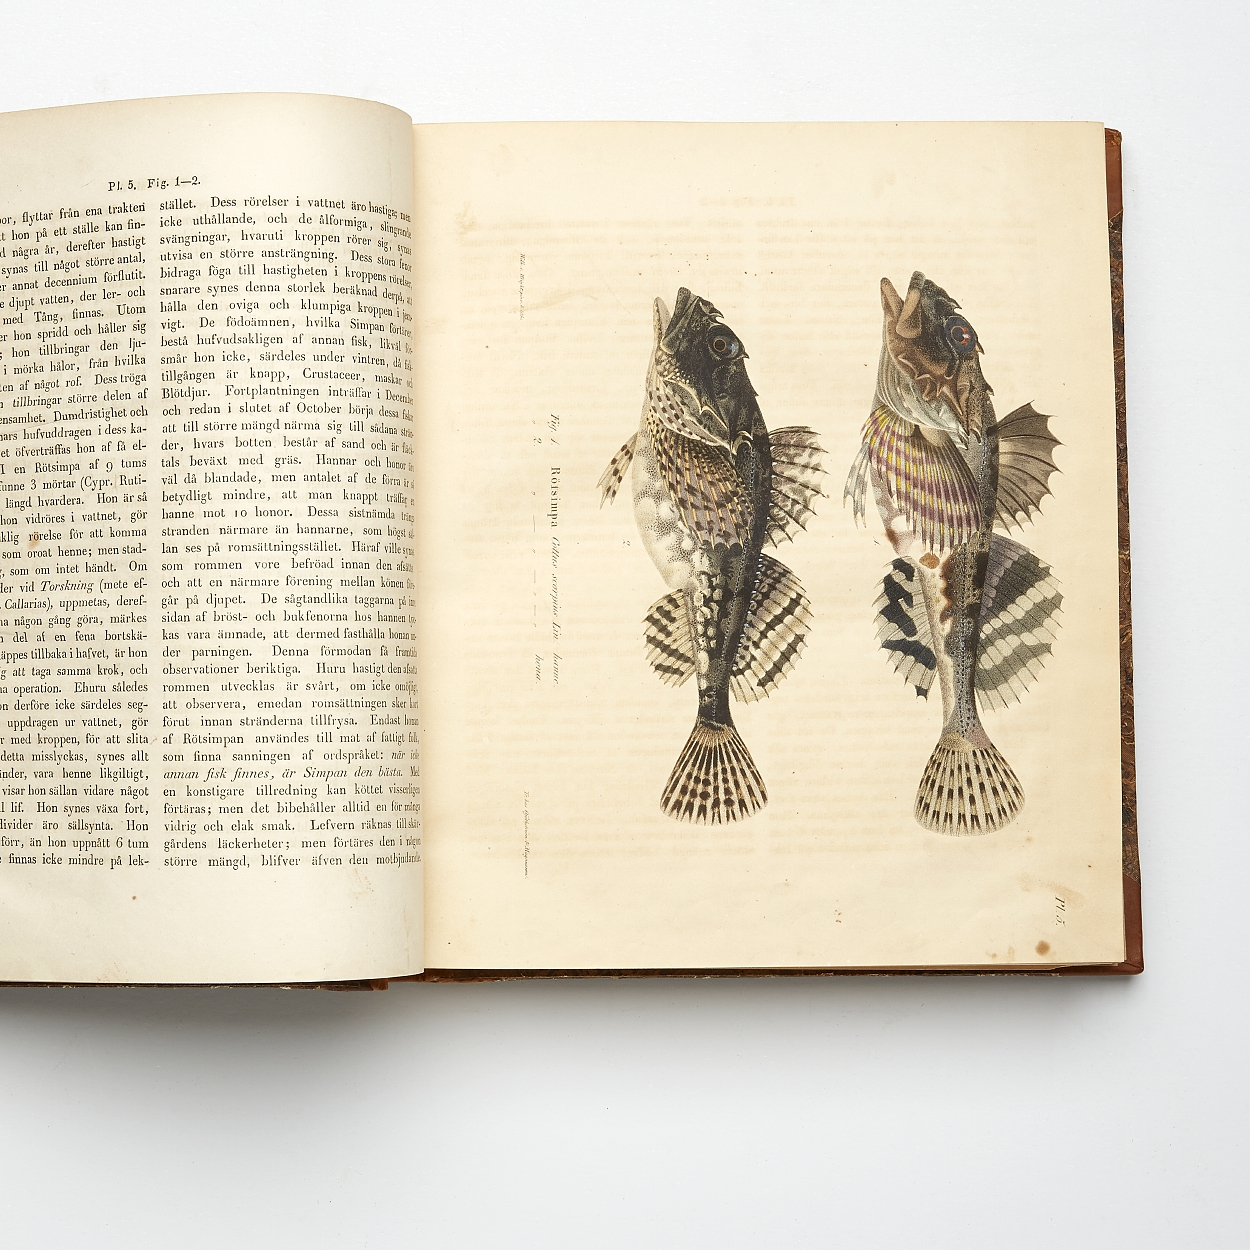 Von Wright's on Scandinavian fishes in 1st edition